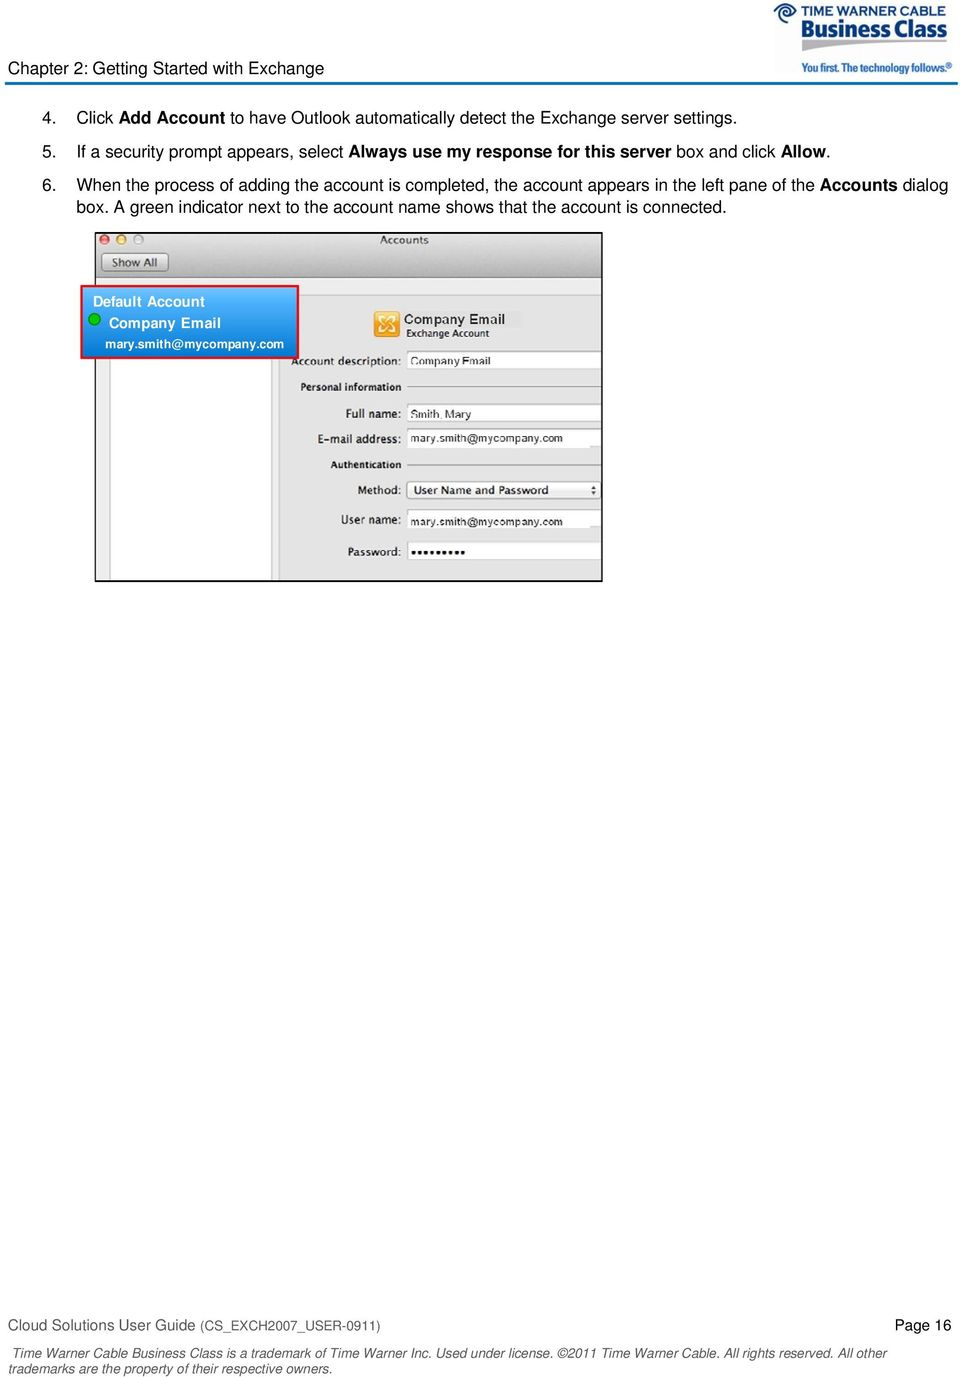 When the process of adding the account is completed, the account appears in the left pane of the Accounts dialog box.